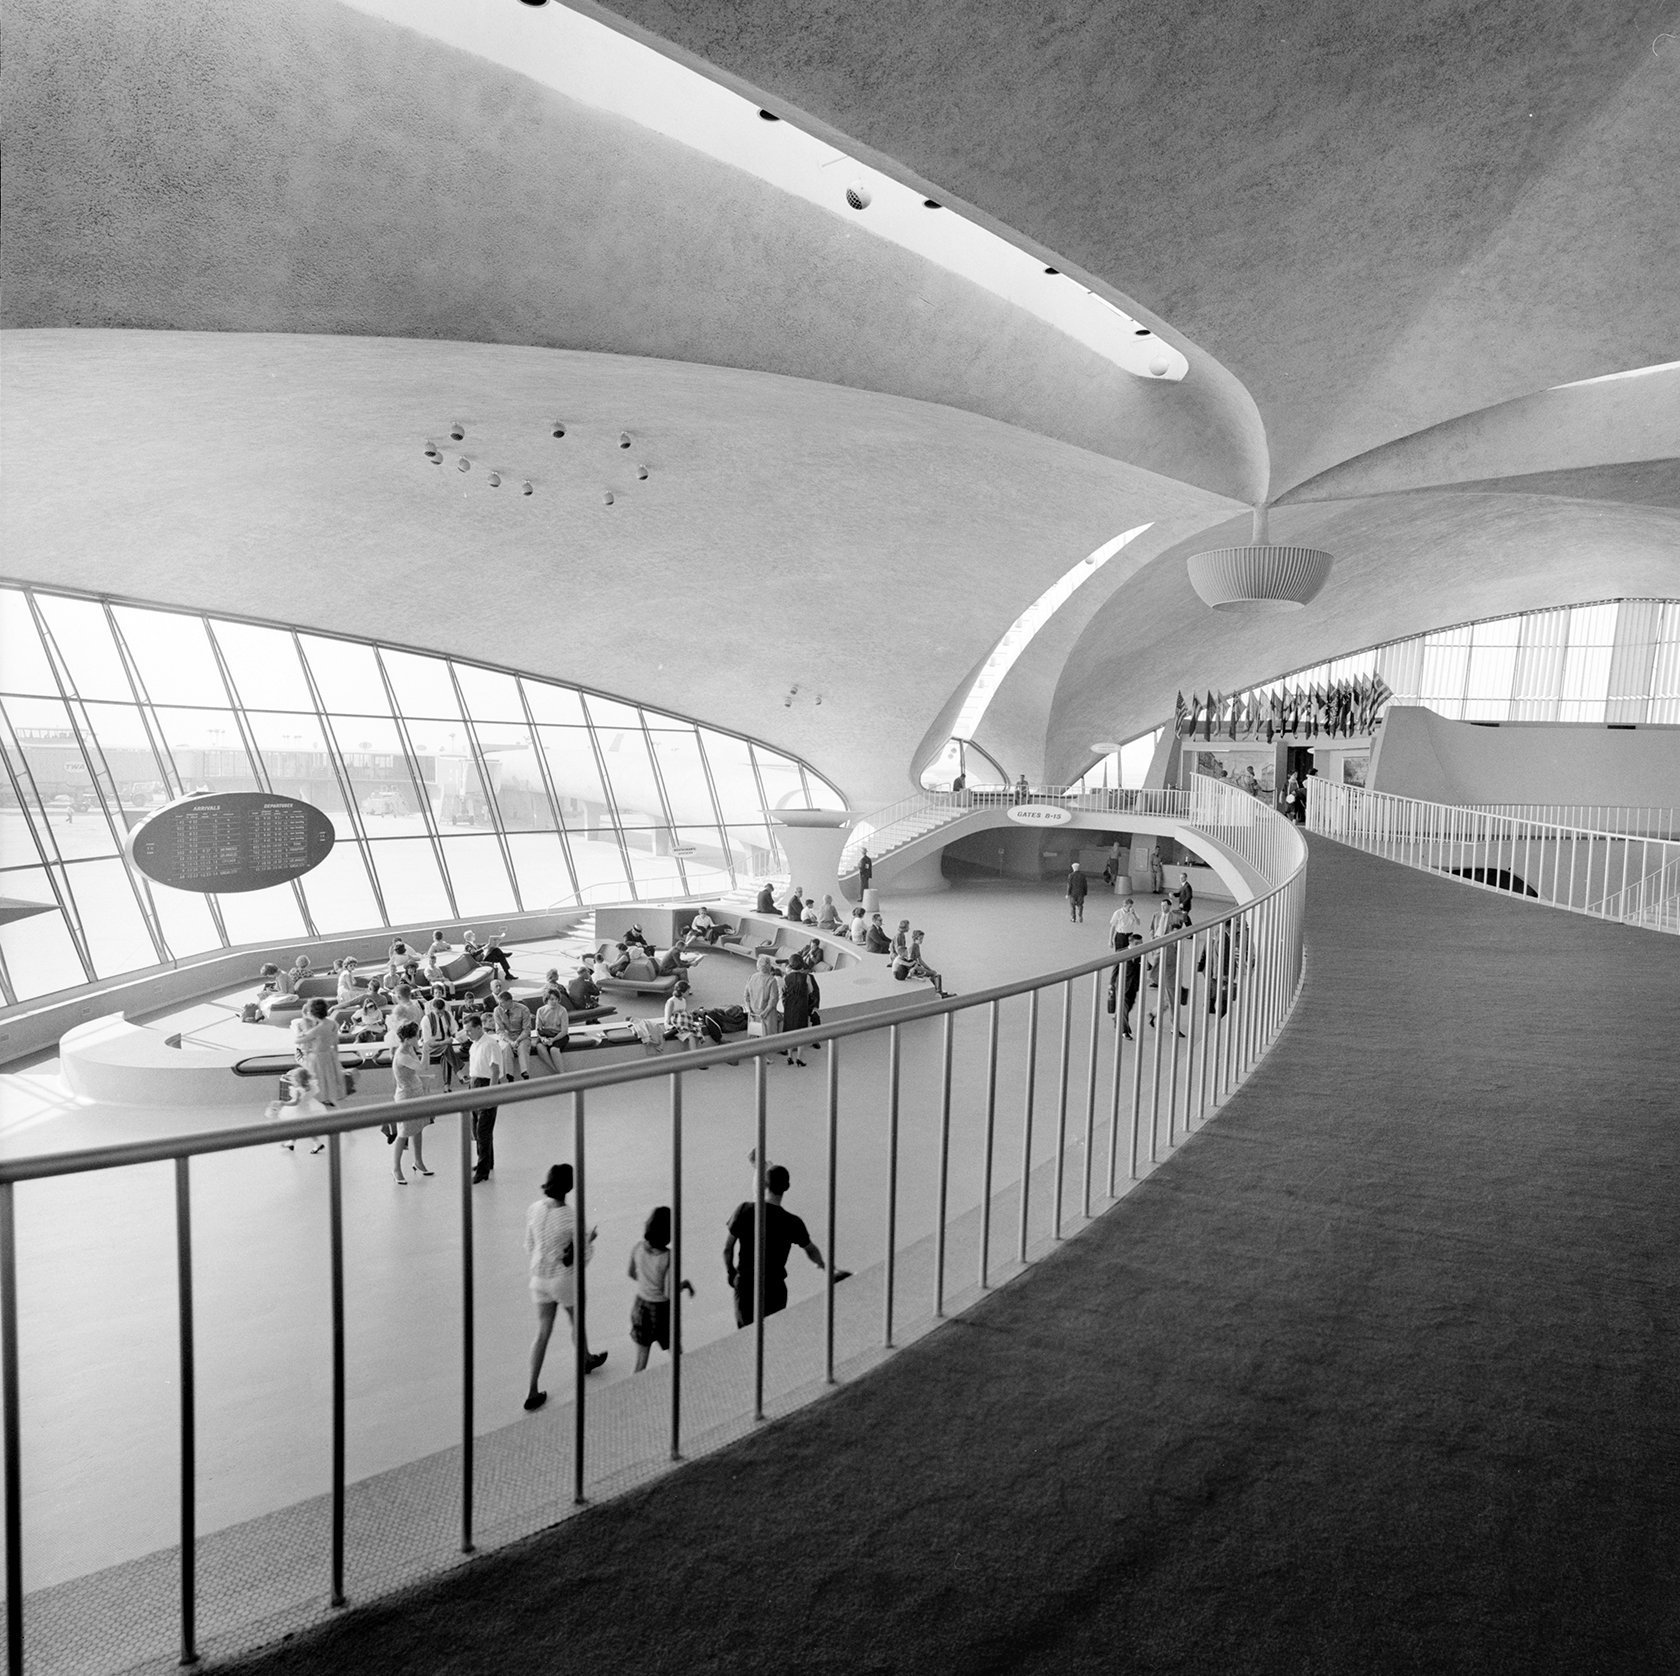 Inside the Idlewild JFK airport terminal in the 1960s (2)